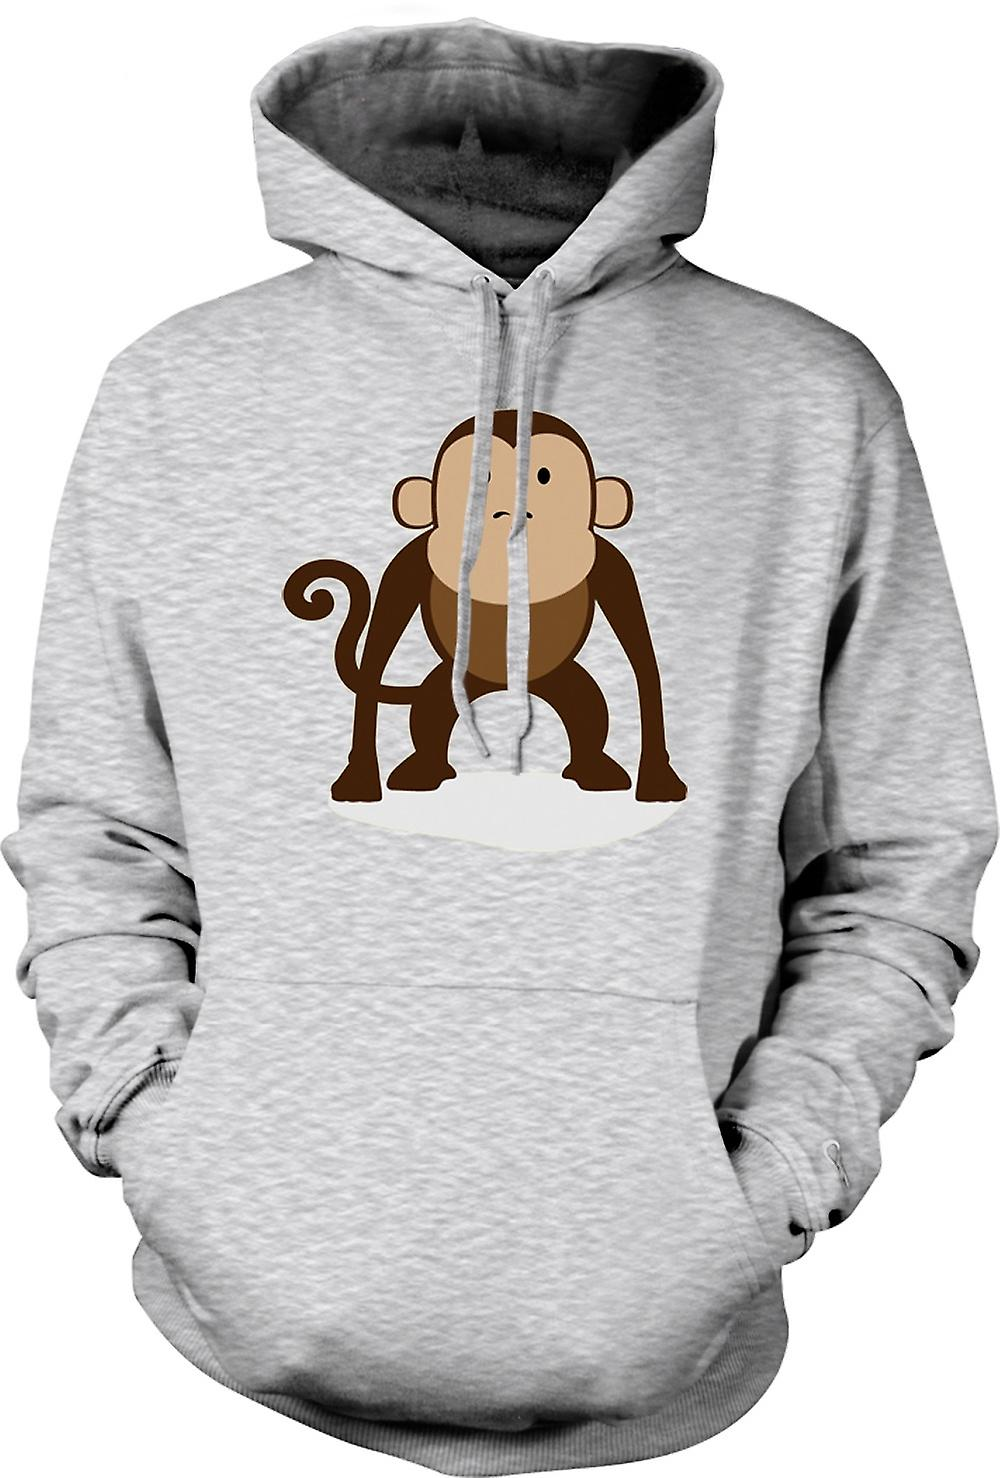 Mens Hoodie - I Love Monkeys - Cute Animal